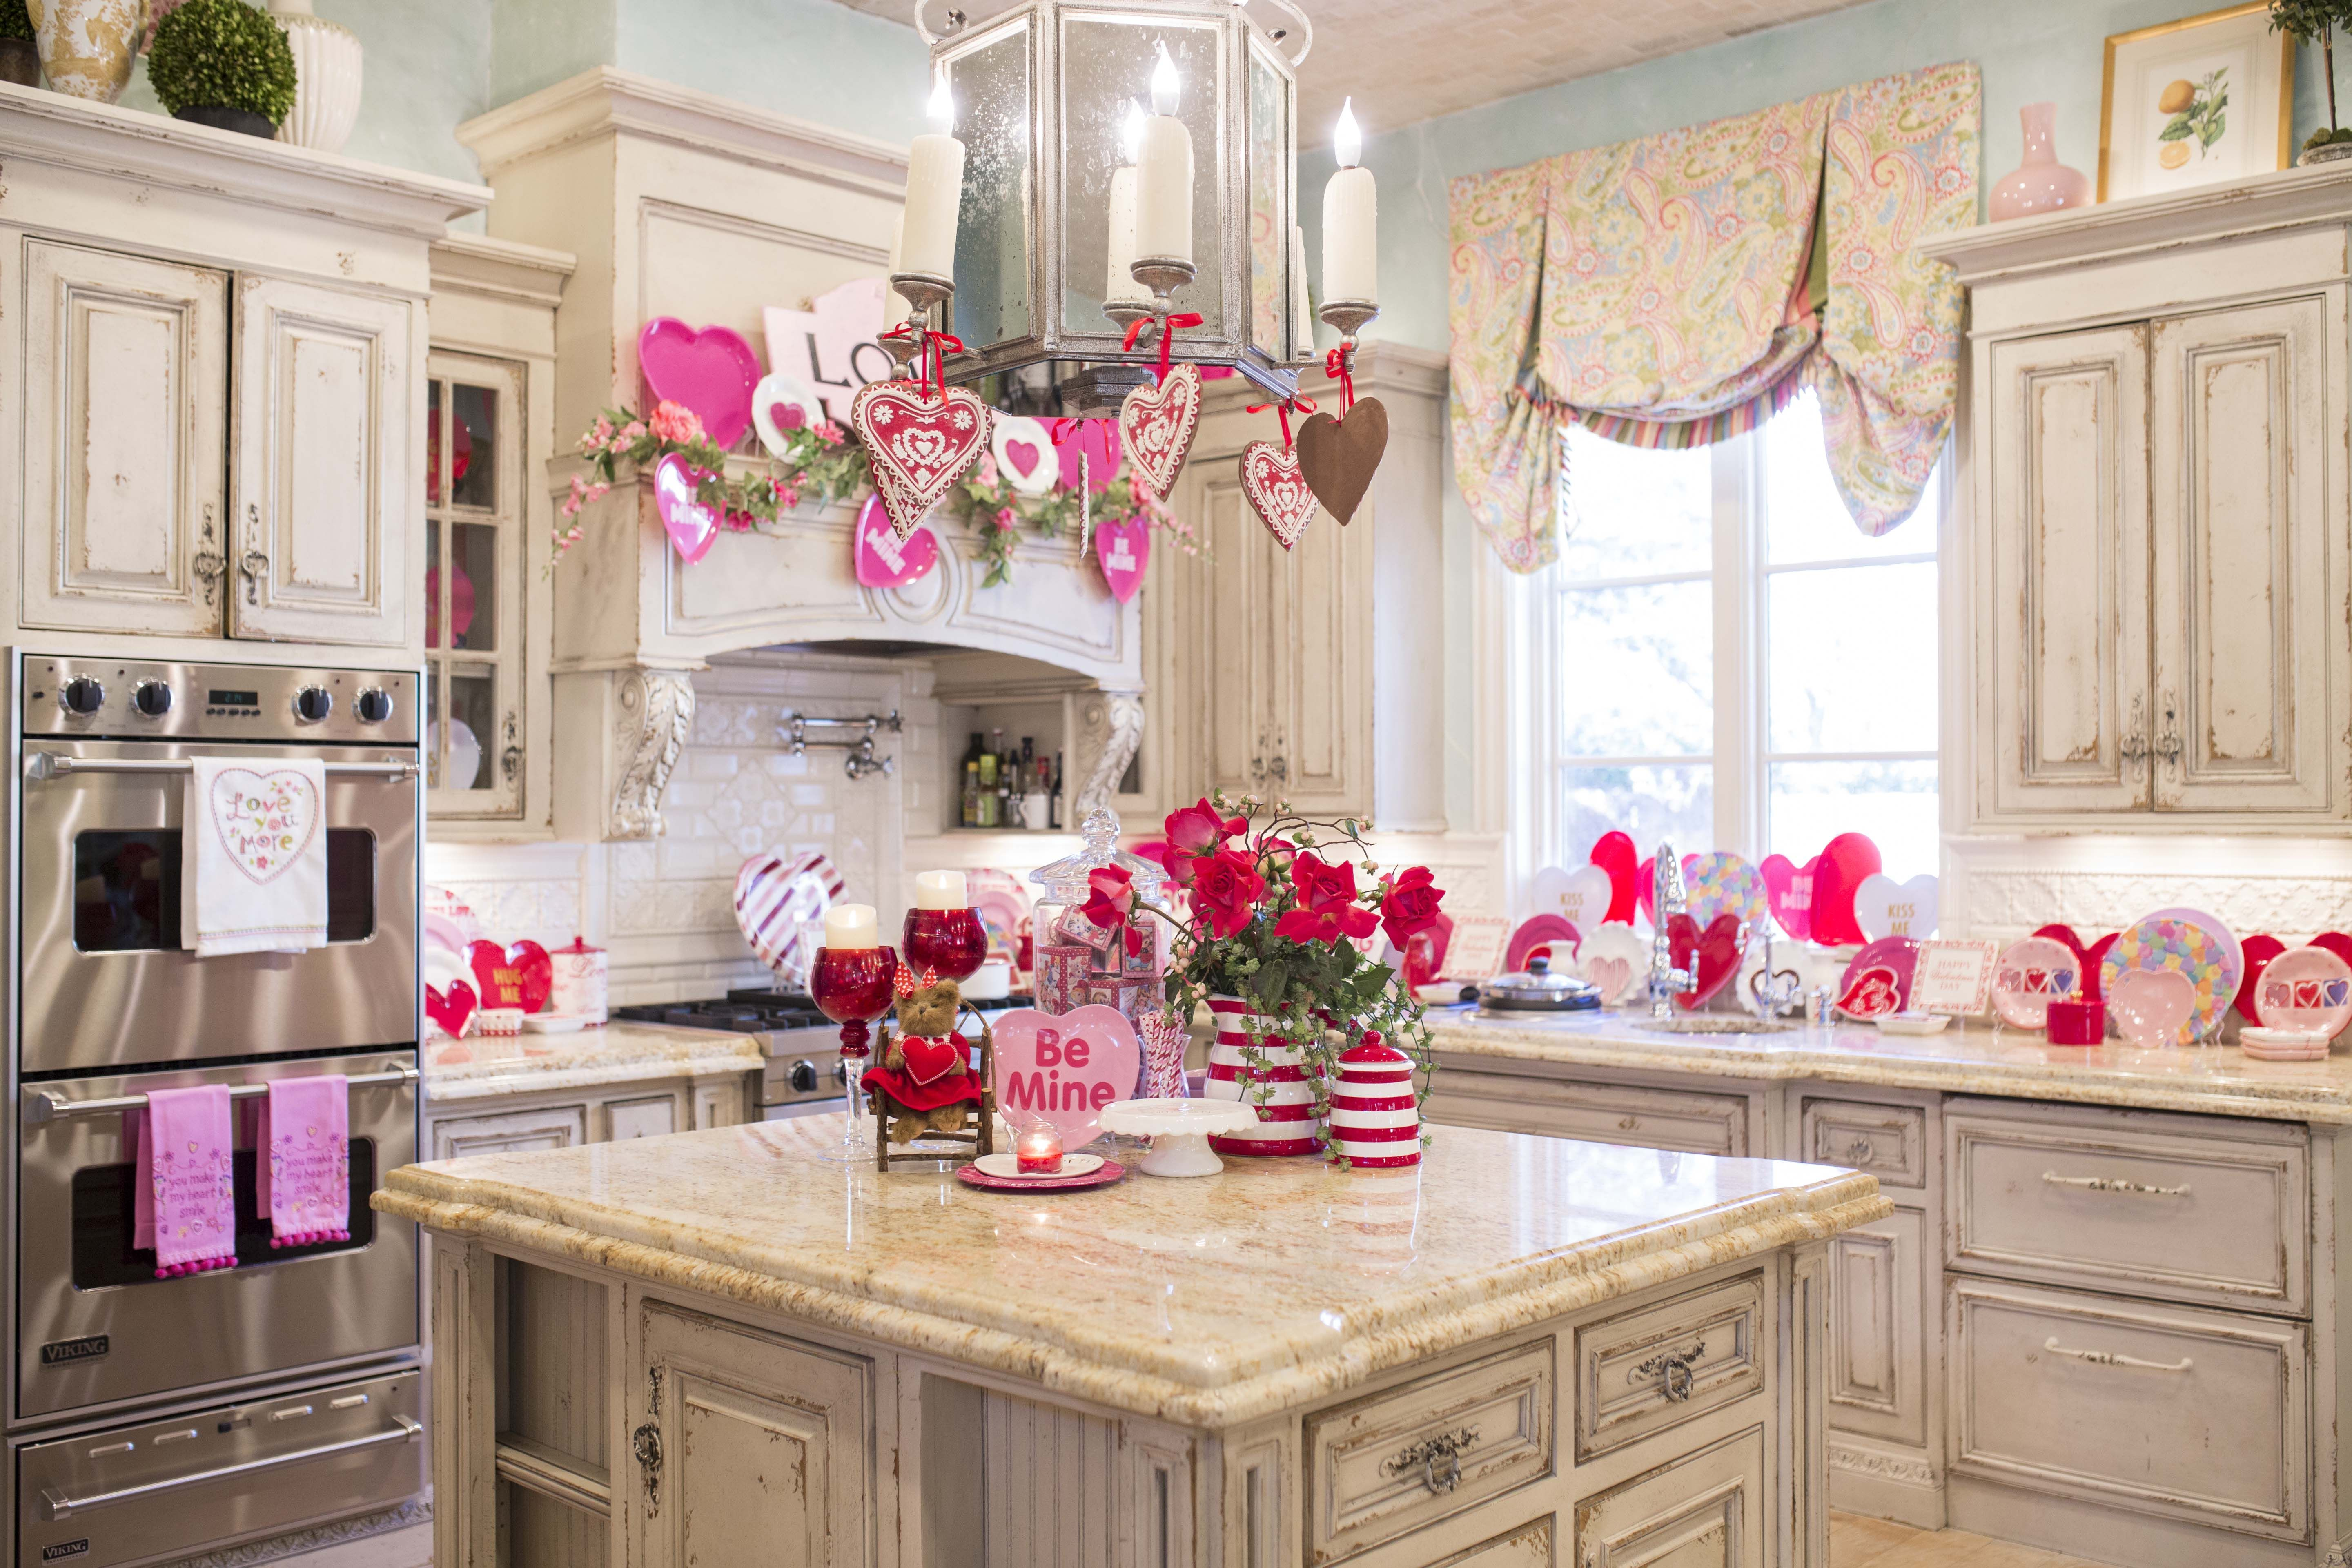 my valentine s day kitchen decor what do you think kitchen decor country style kitchen on kitchen ideas decoration themes id=53513